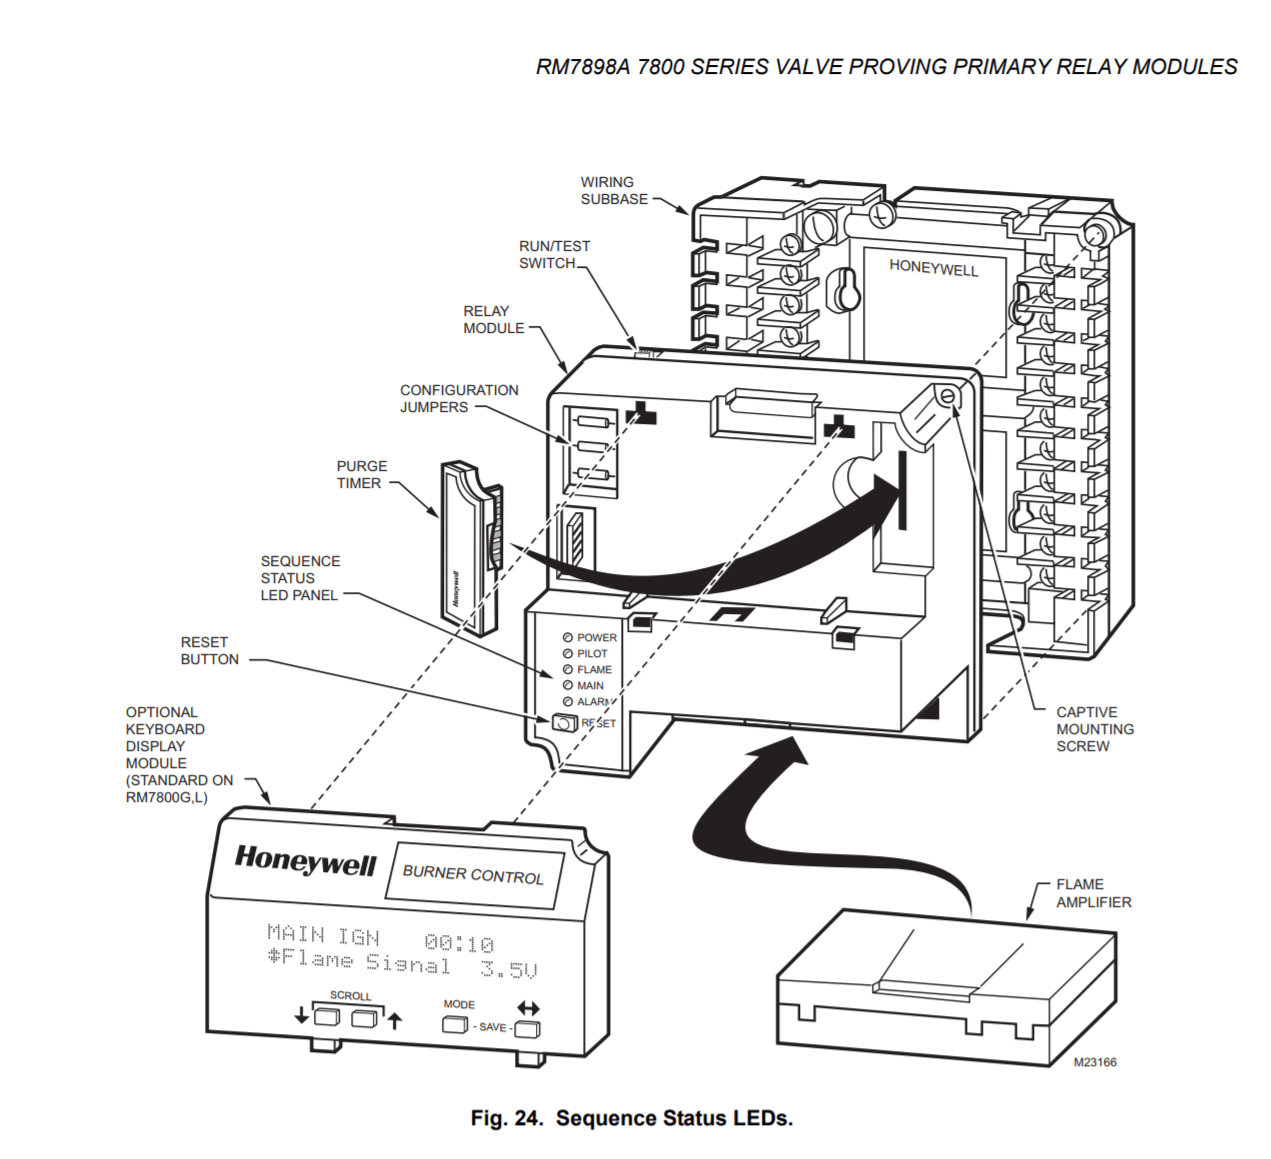 hight resolution of honeywell 7800 wiring diagram wiring diagram and engine diagram gas control valve wiring diagram honeywell 7800